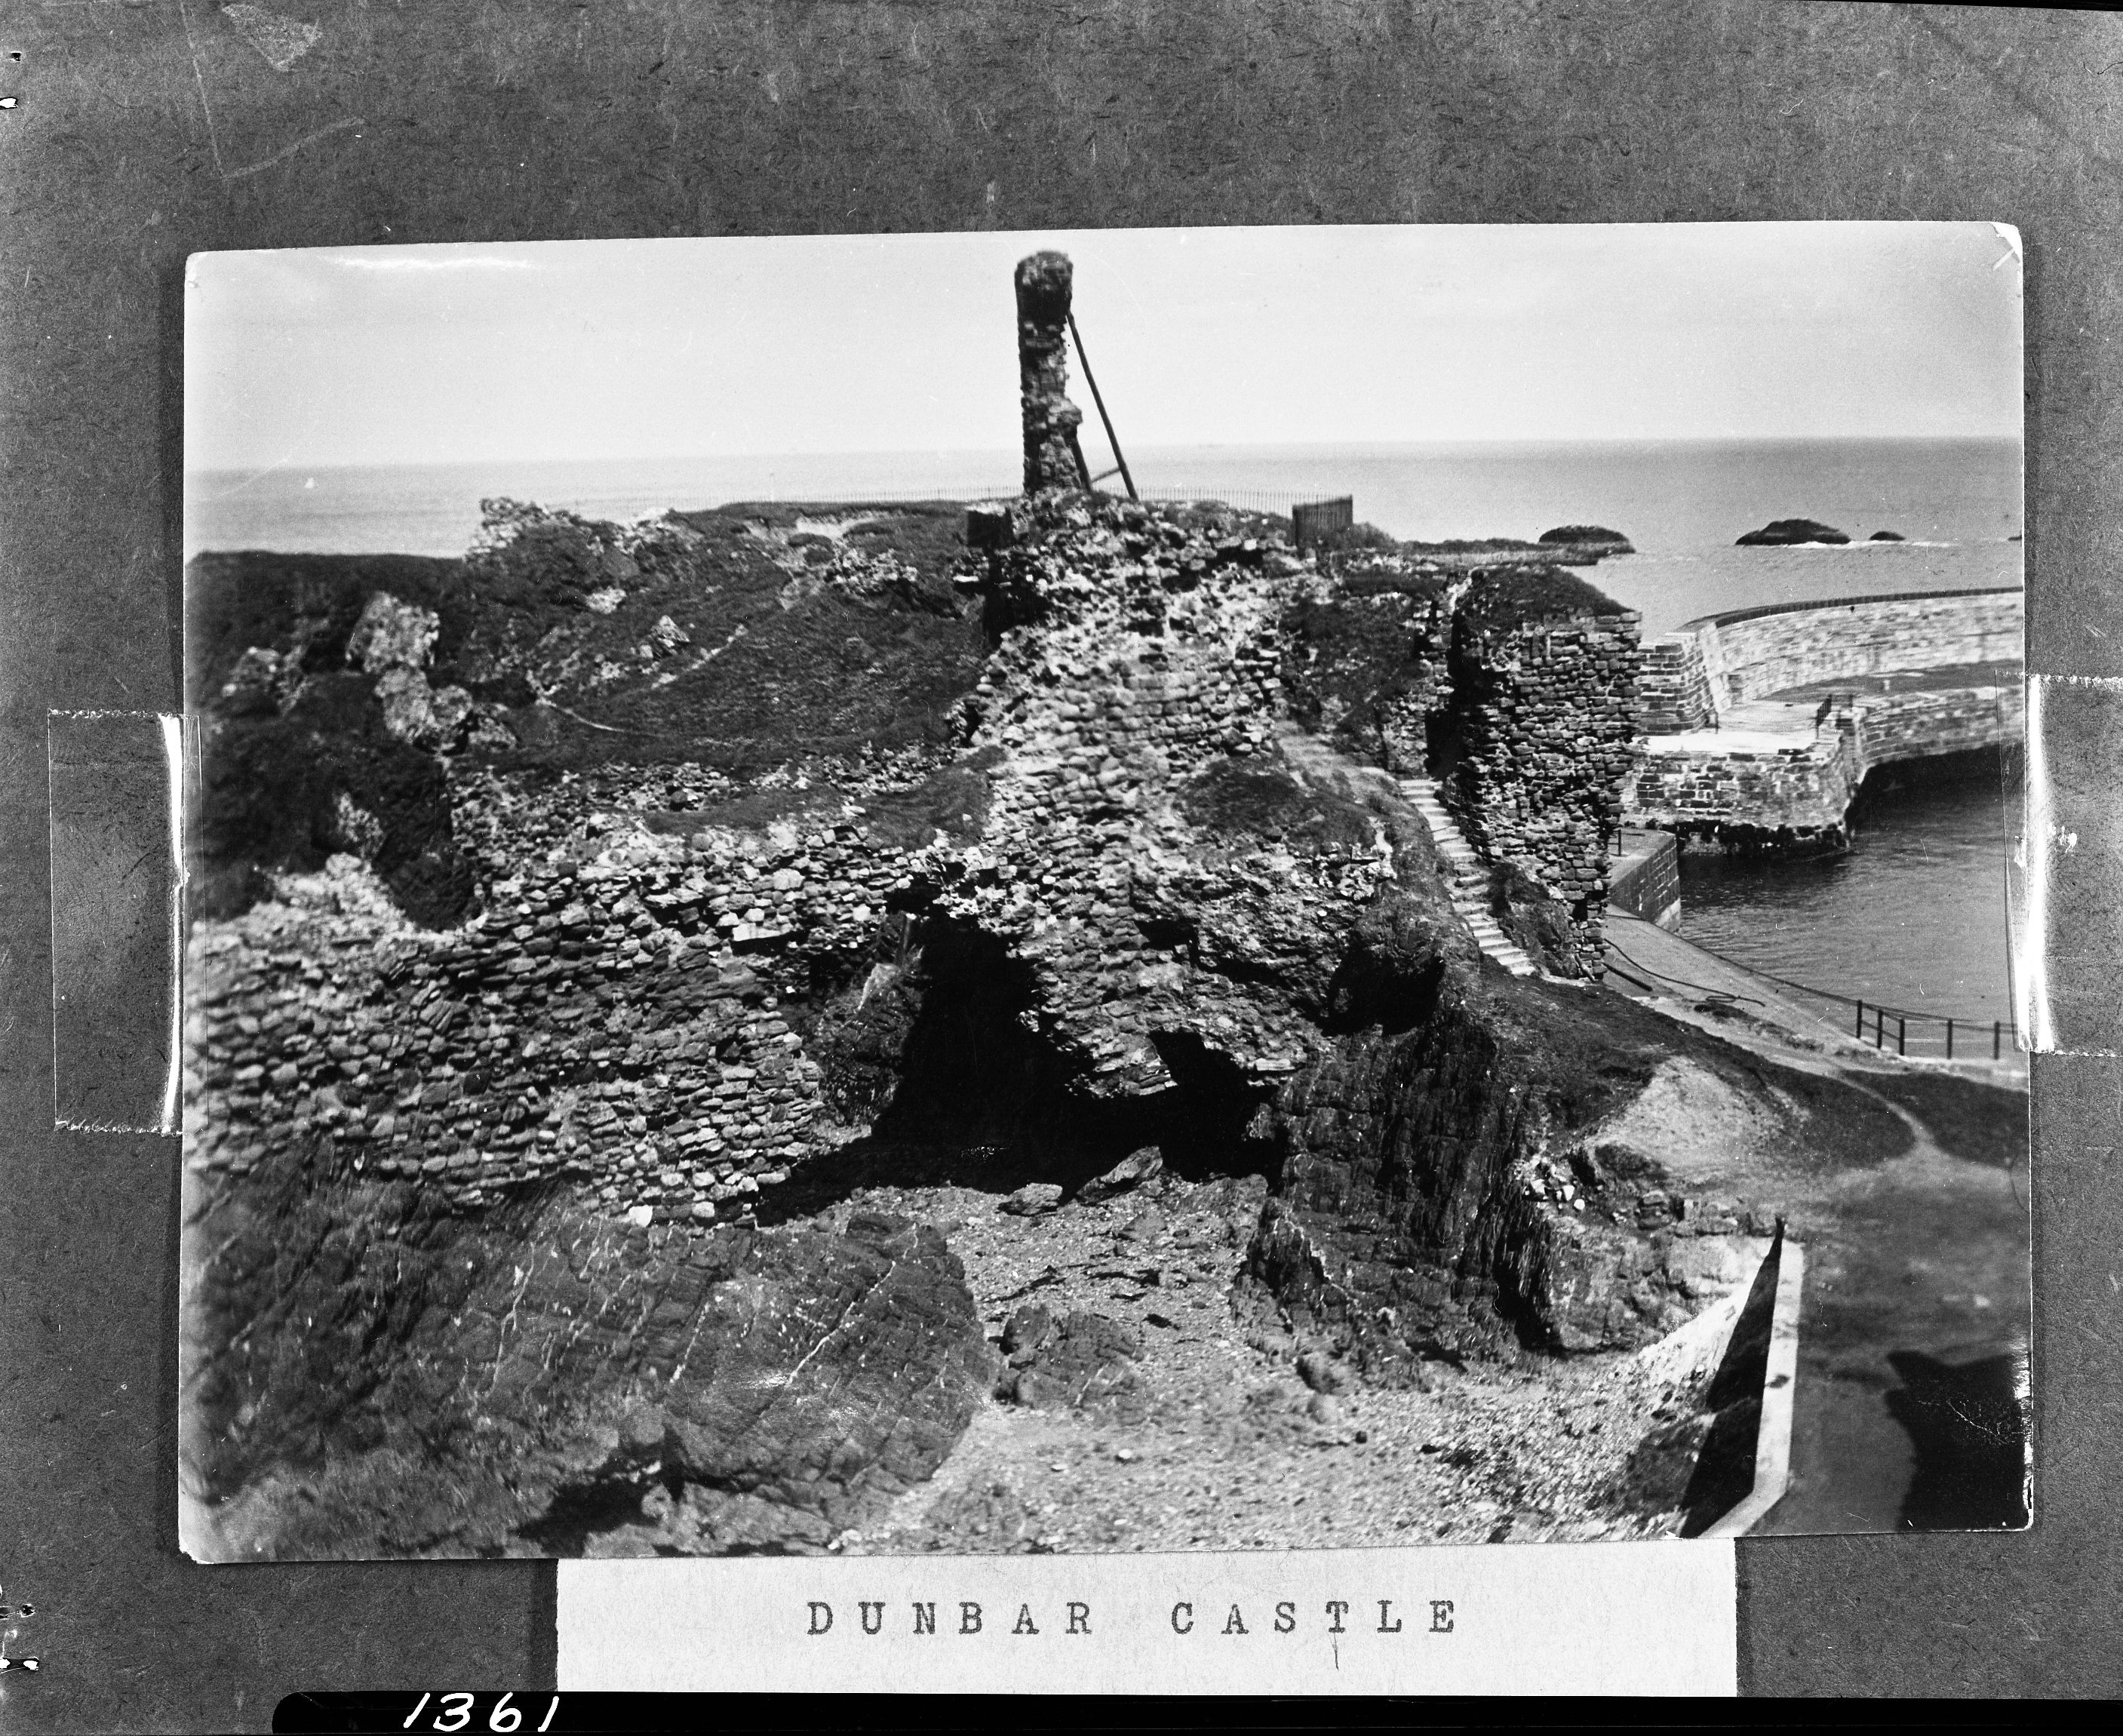 Dunbar Castle, Scotland, was the ancient seat of the Earls of Dunbar, later of the Stuart family. Mary Queen of Scots lived in the castle with her first husband, Lord Darnley, and later with the Earl of Bothwell.